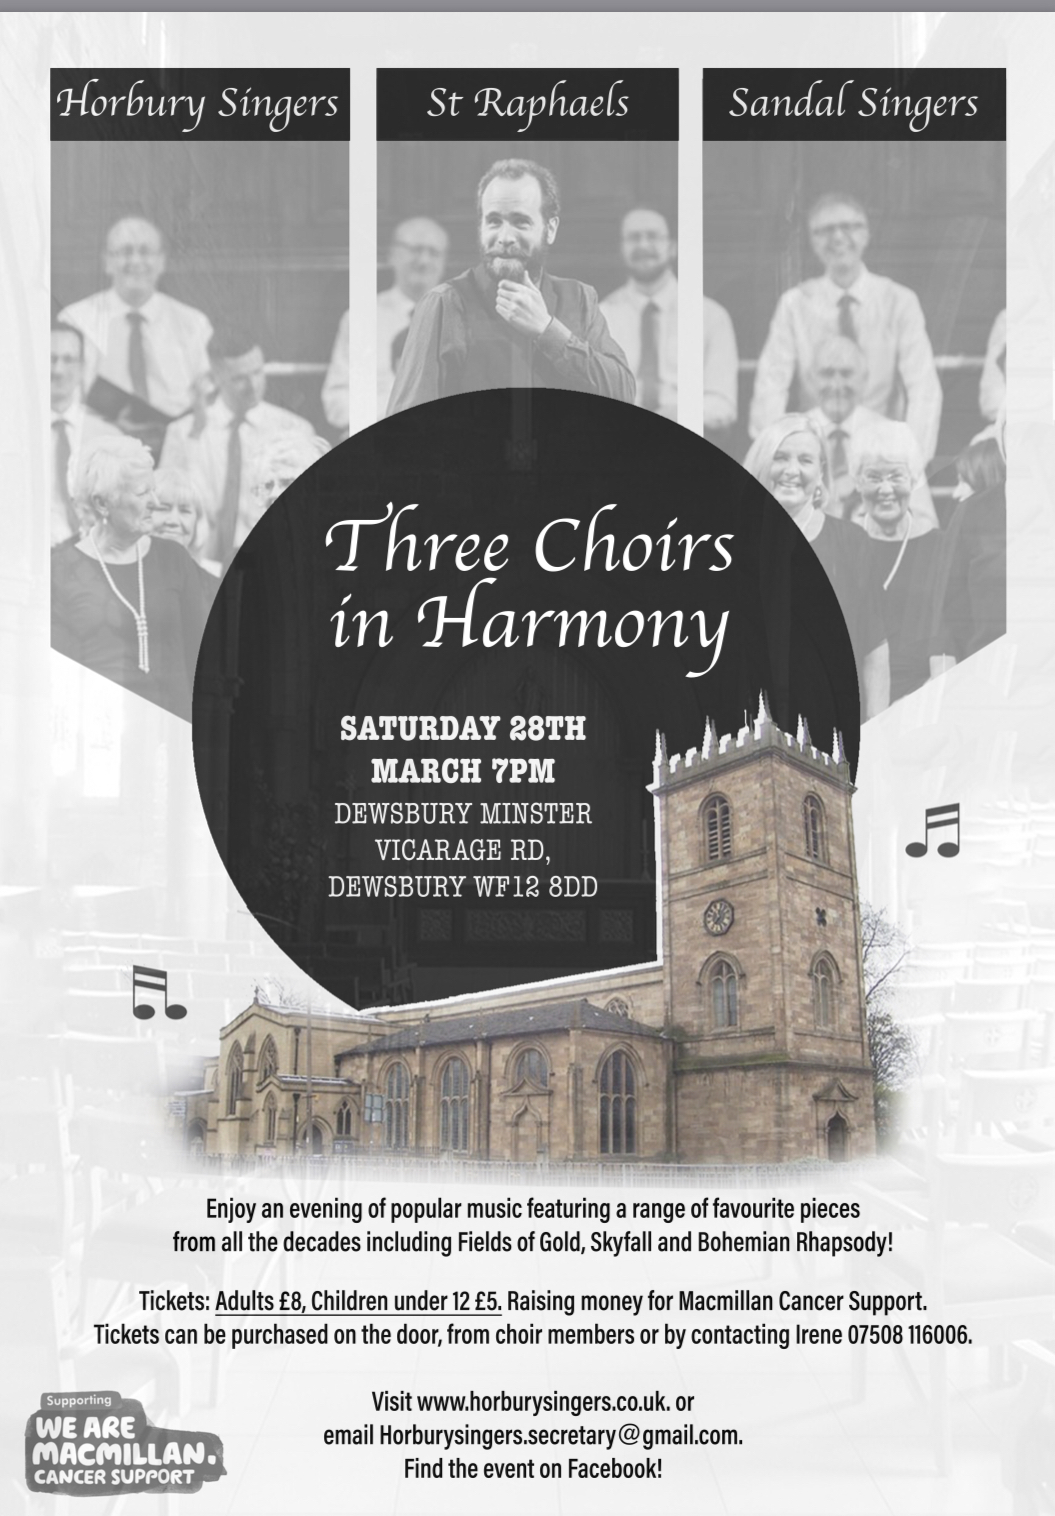 Three Choirs in Harmony Concert 28 March 20